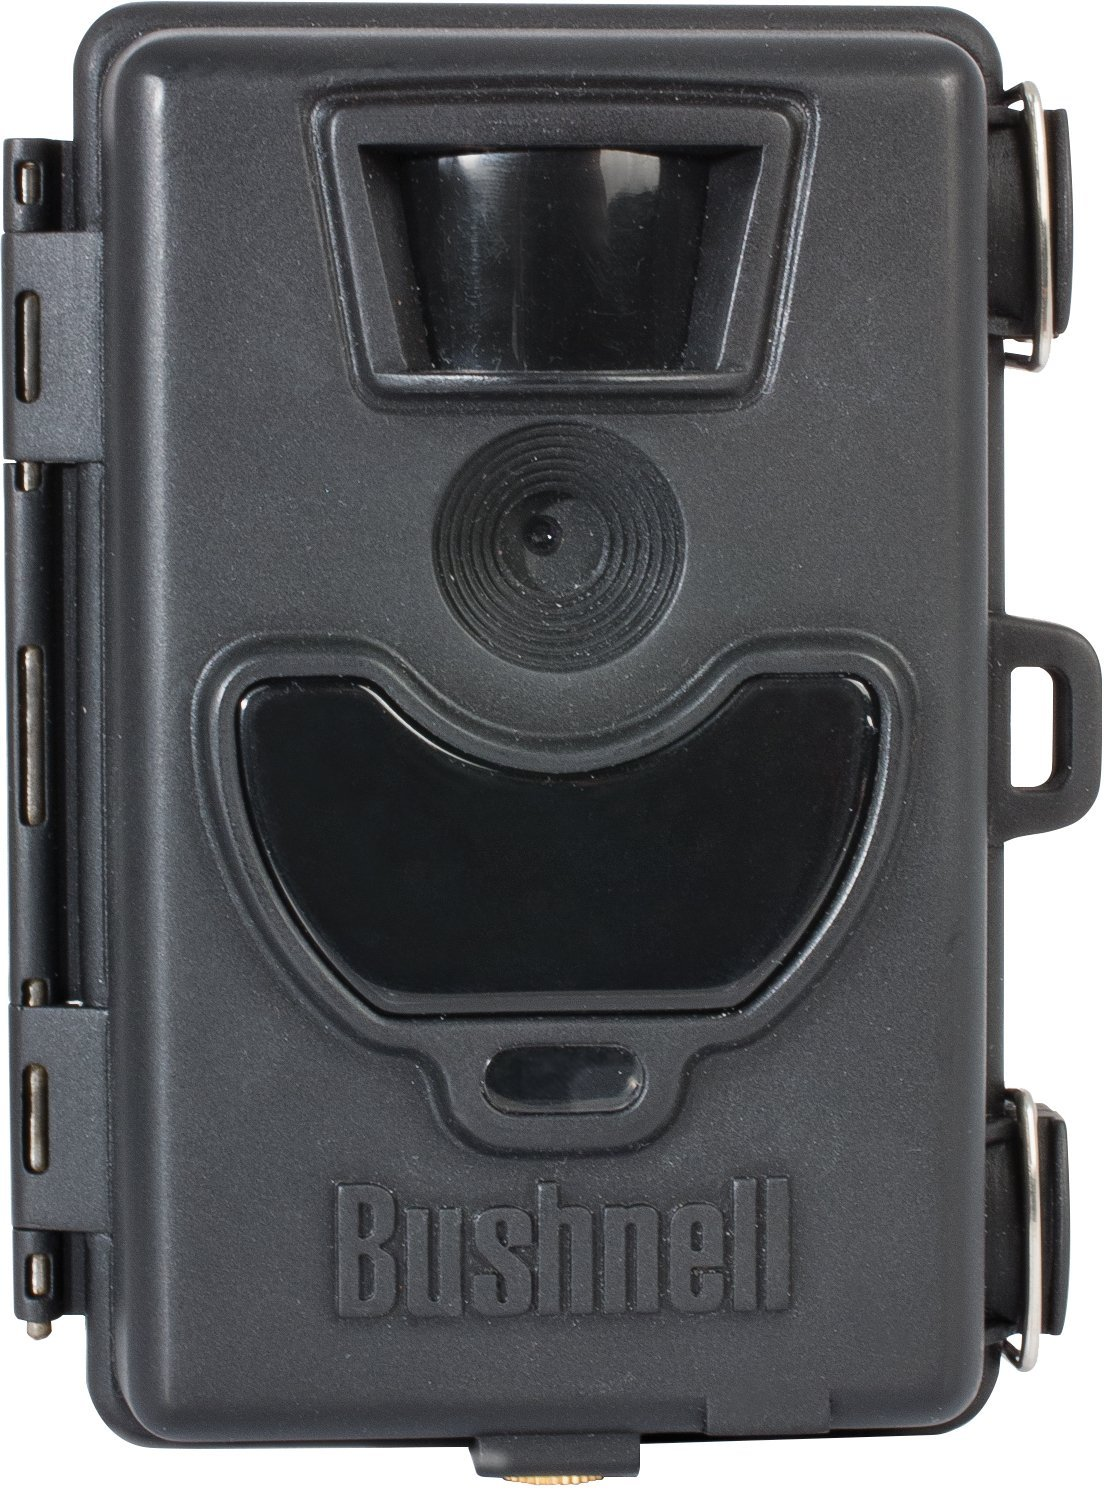 Bushnell Night Vision Video Security